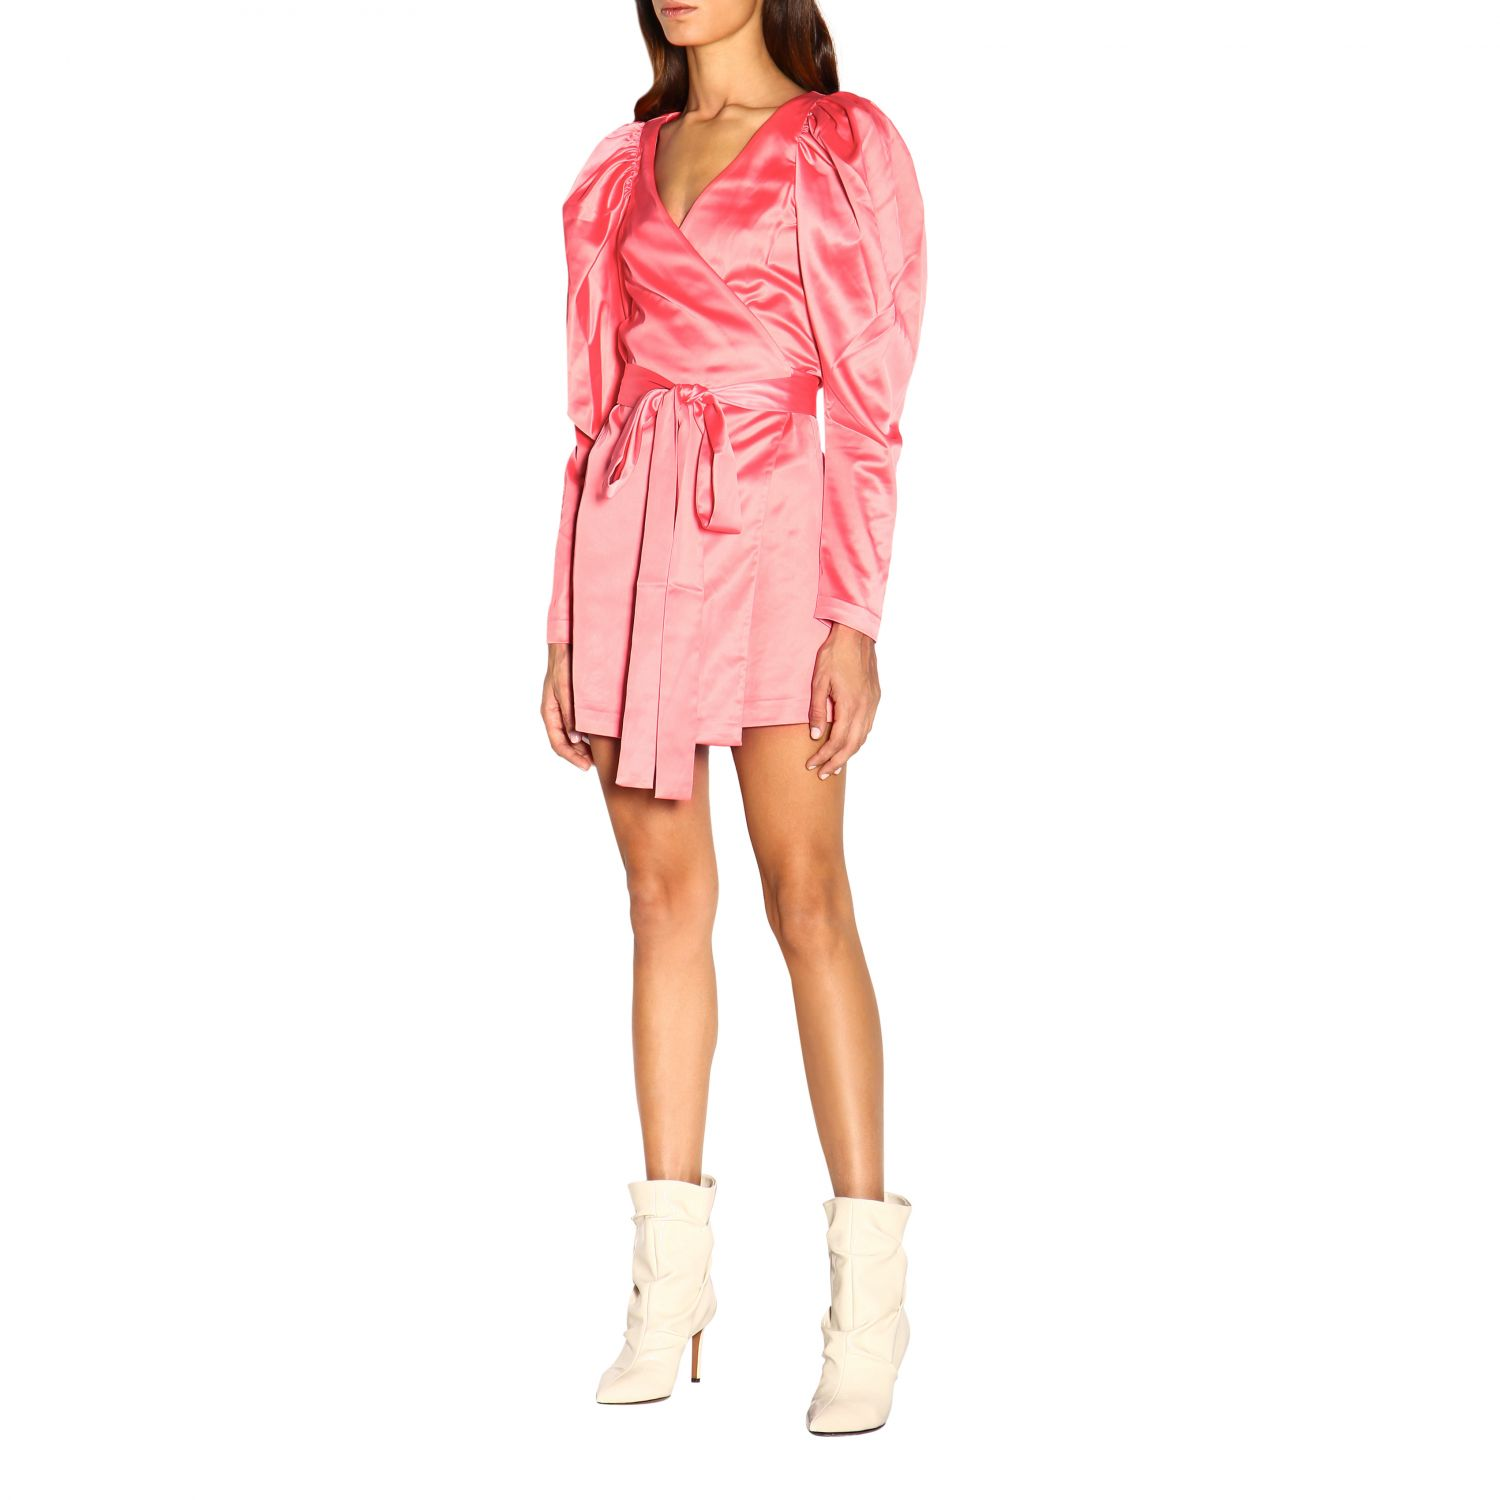 Robes femme Rotate rose 3